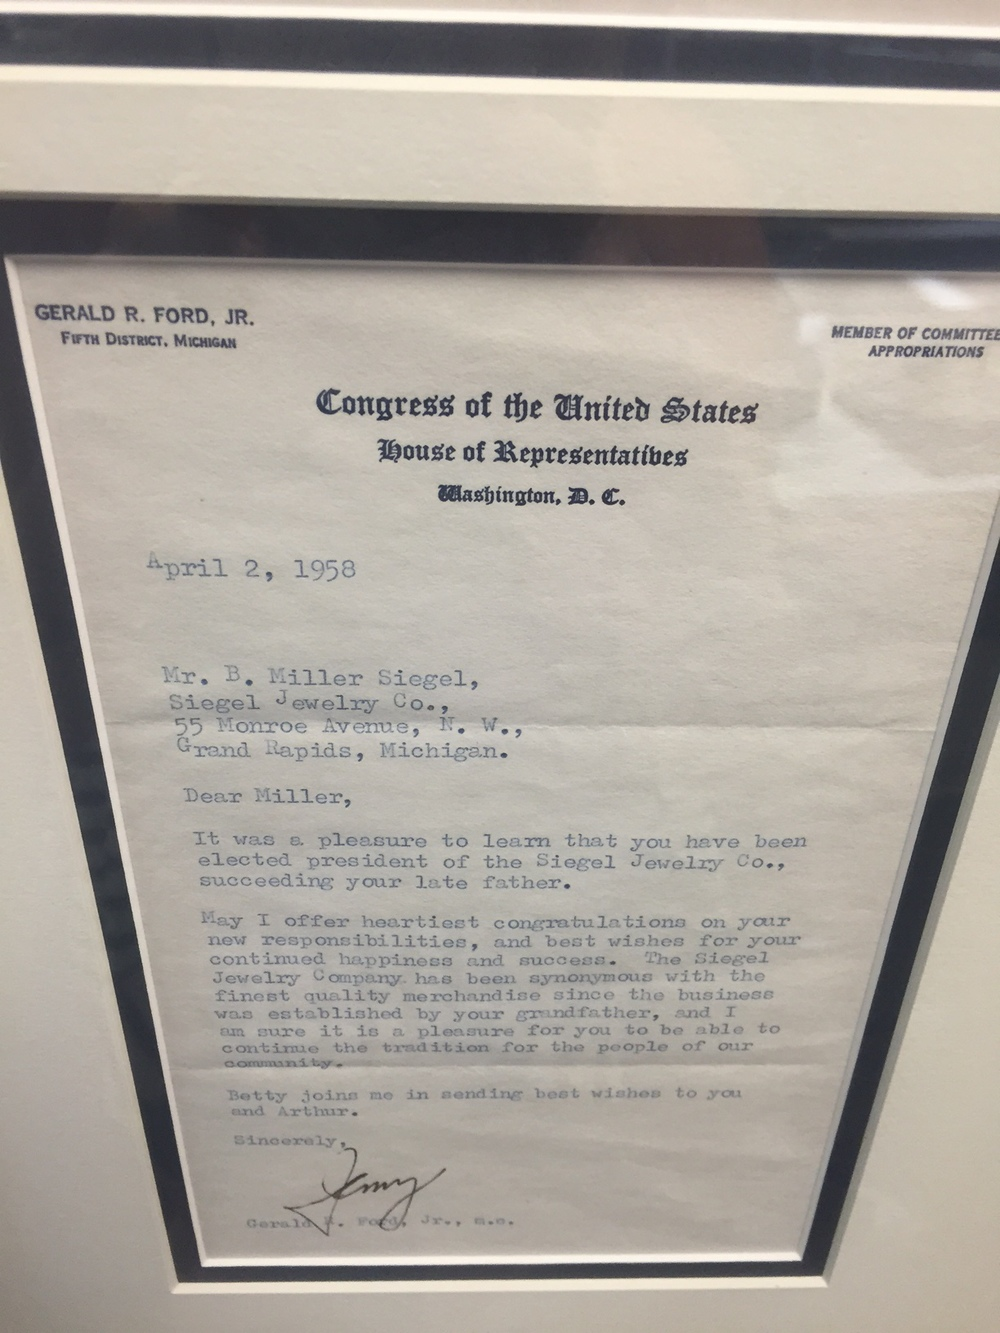 Letter from Gerald R. Ford congratulating Miller for taking over the store in 1958